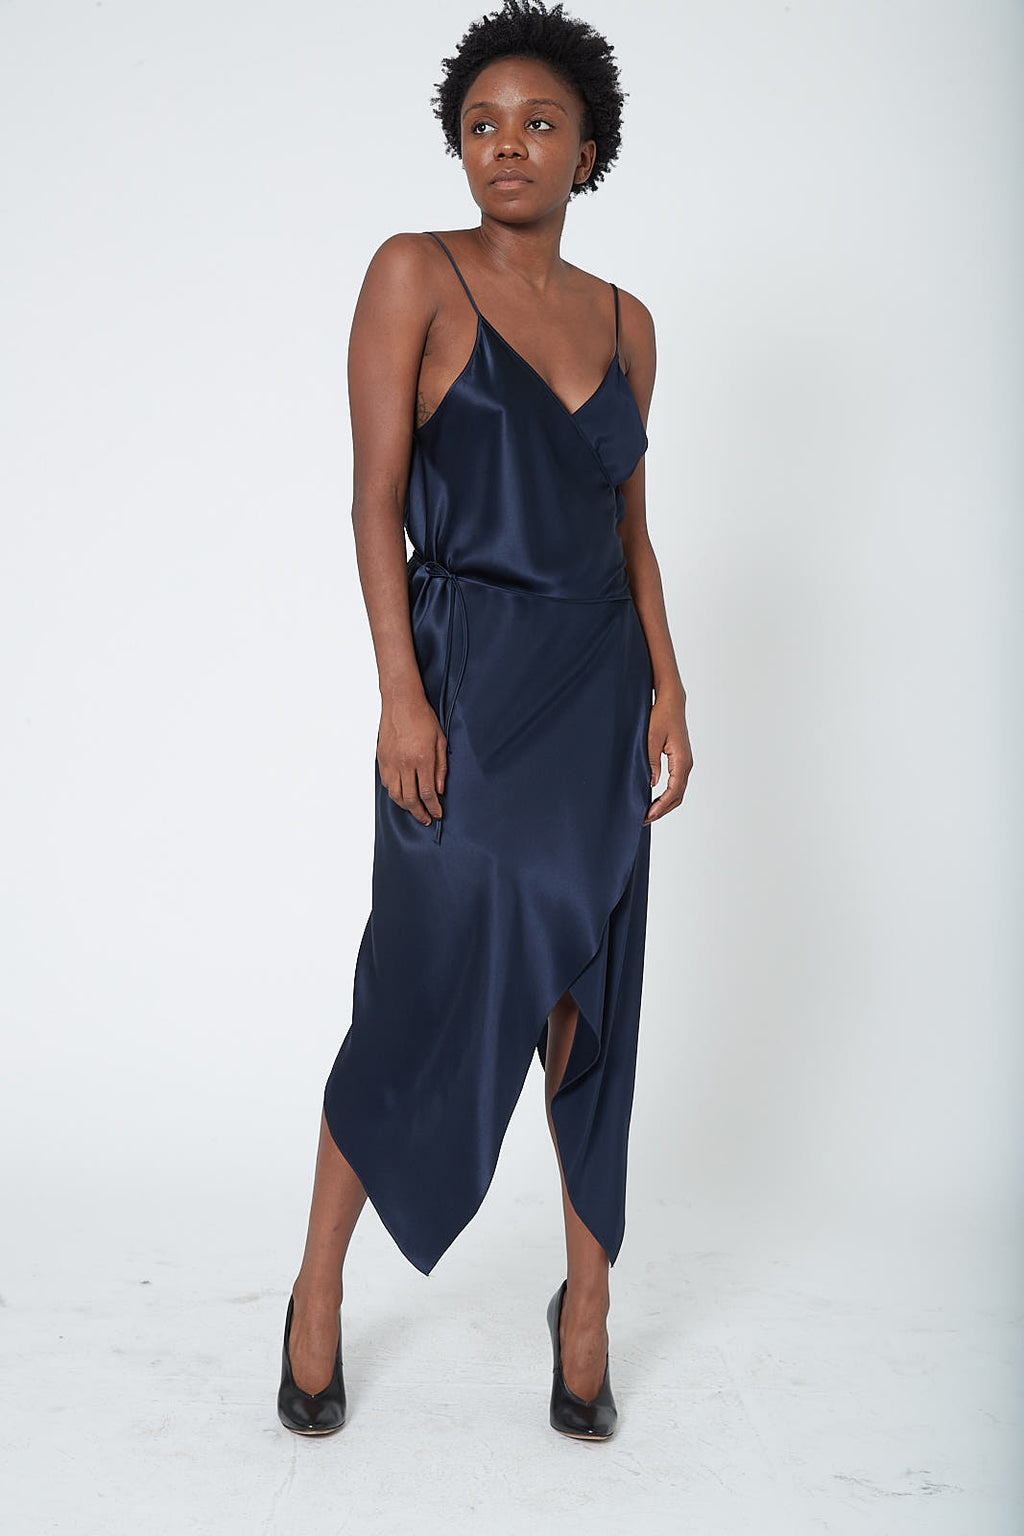 KES Augustine Double Wrap Dress FW19 - Midnight